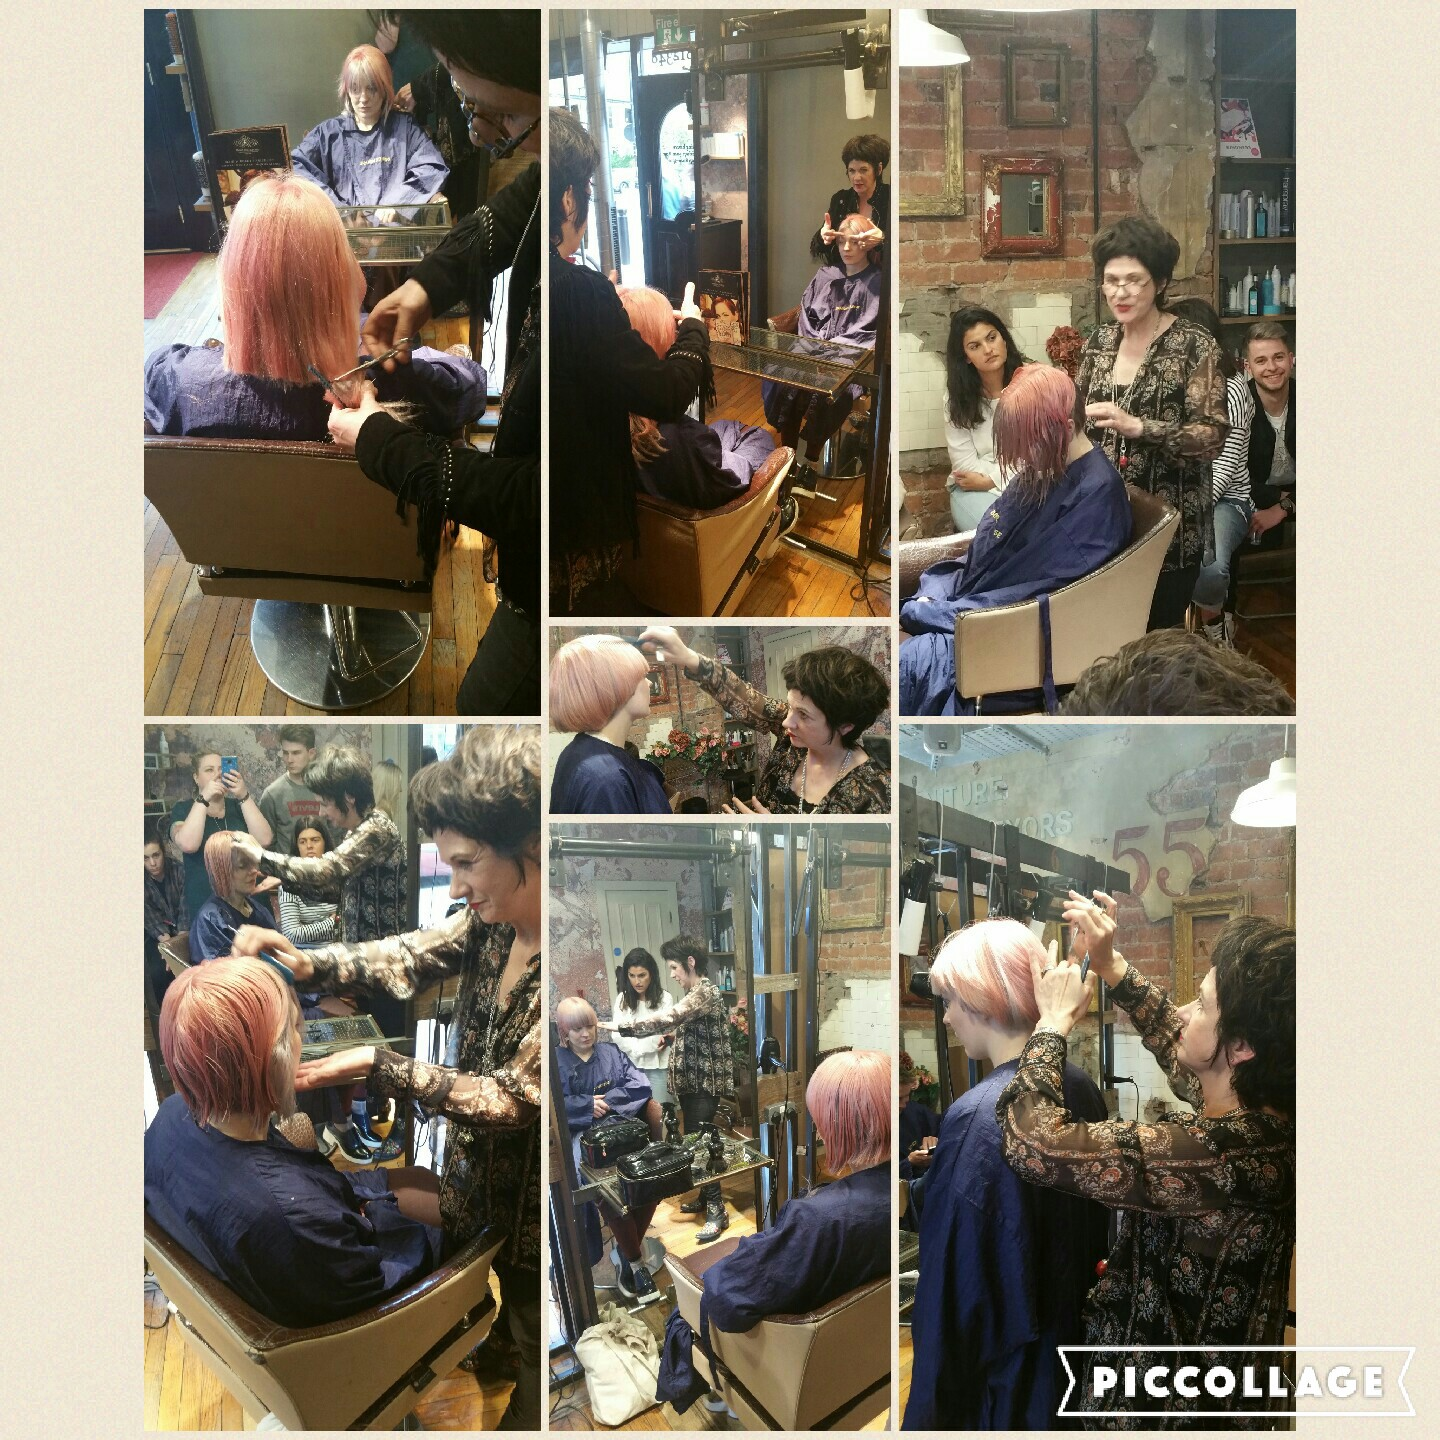 Cutting edge catwalk hair comes to Boilerhouse